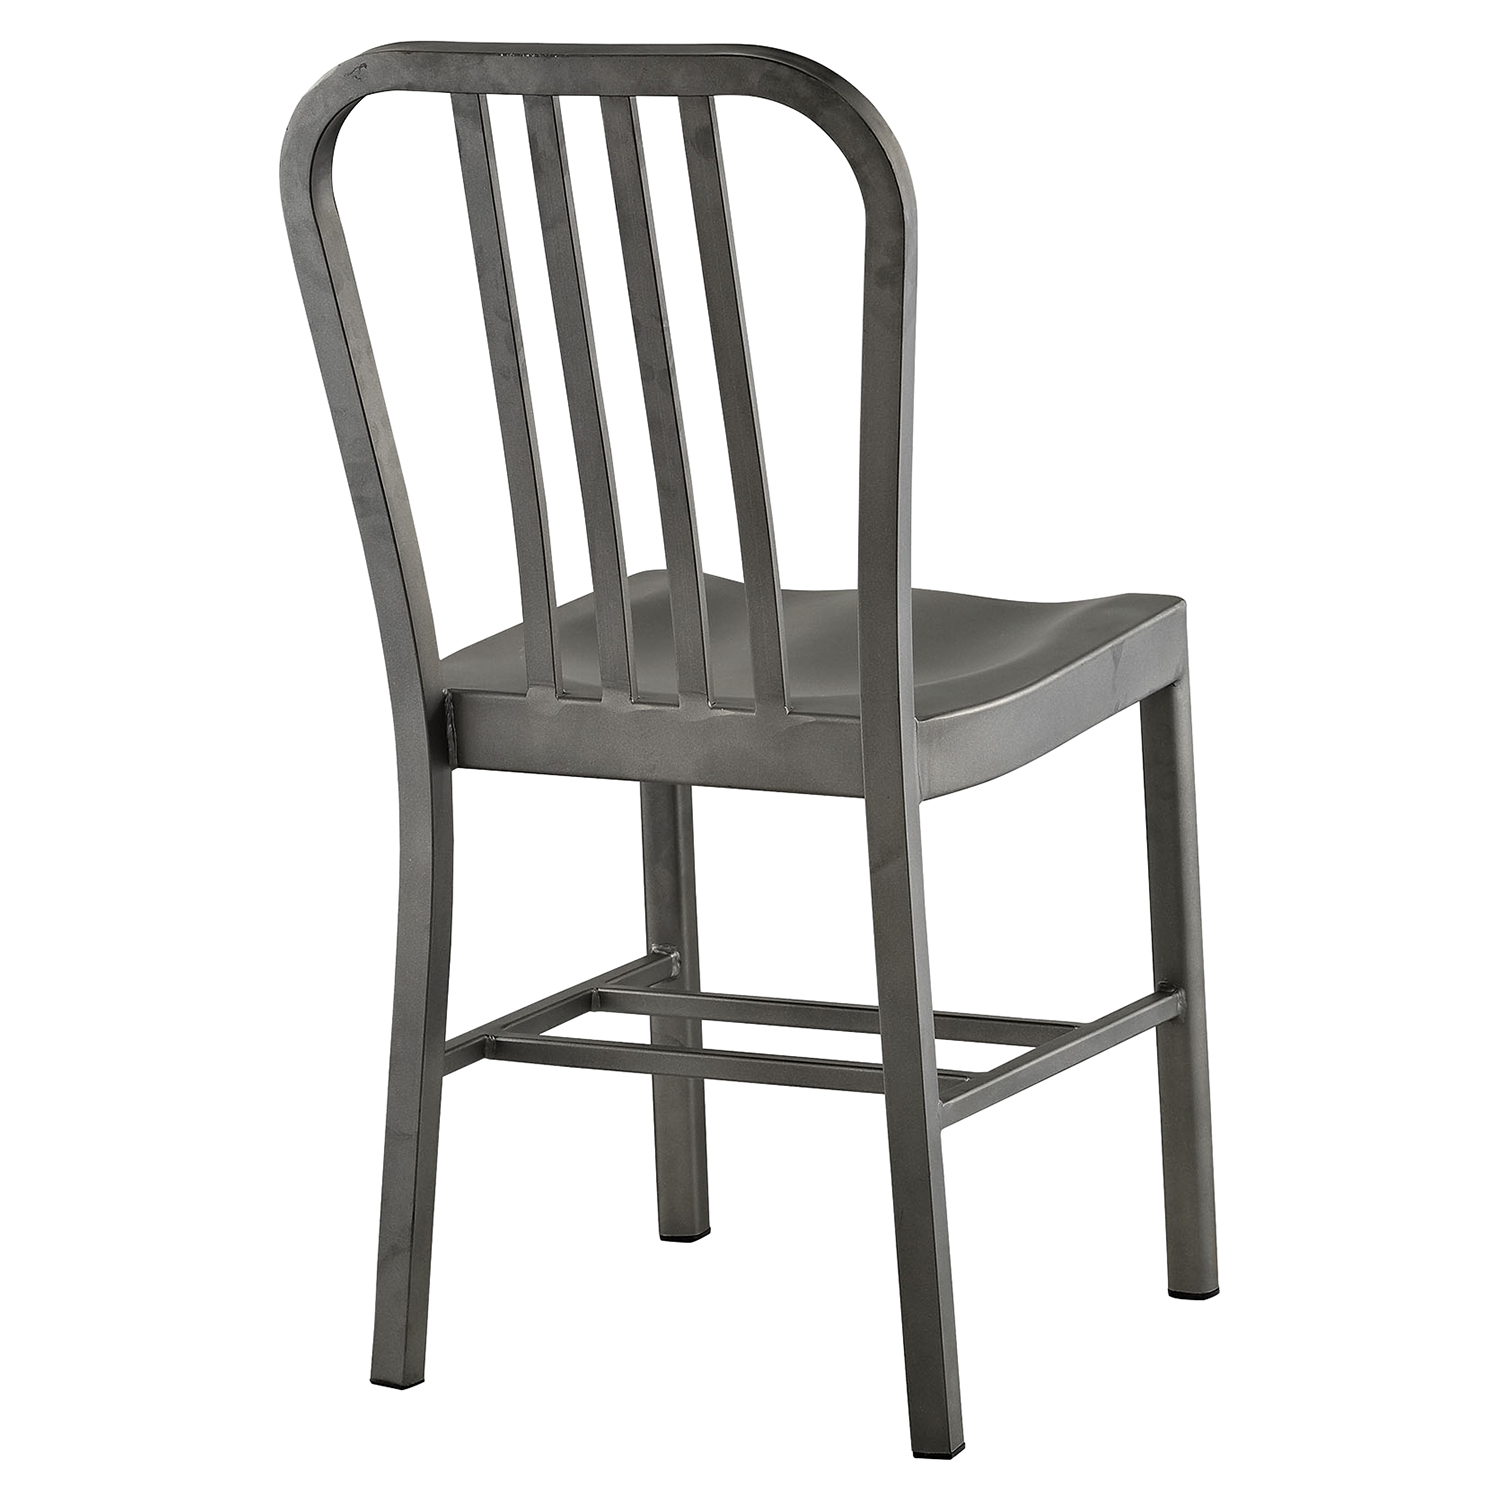 Clink Dining Chair - Silver - EEI-2039-SLV